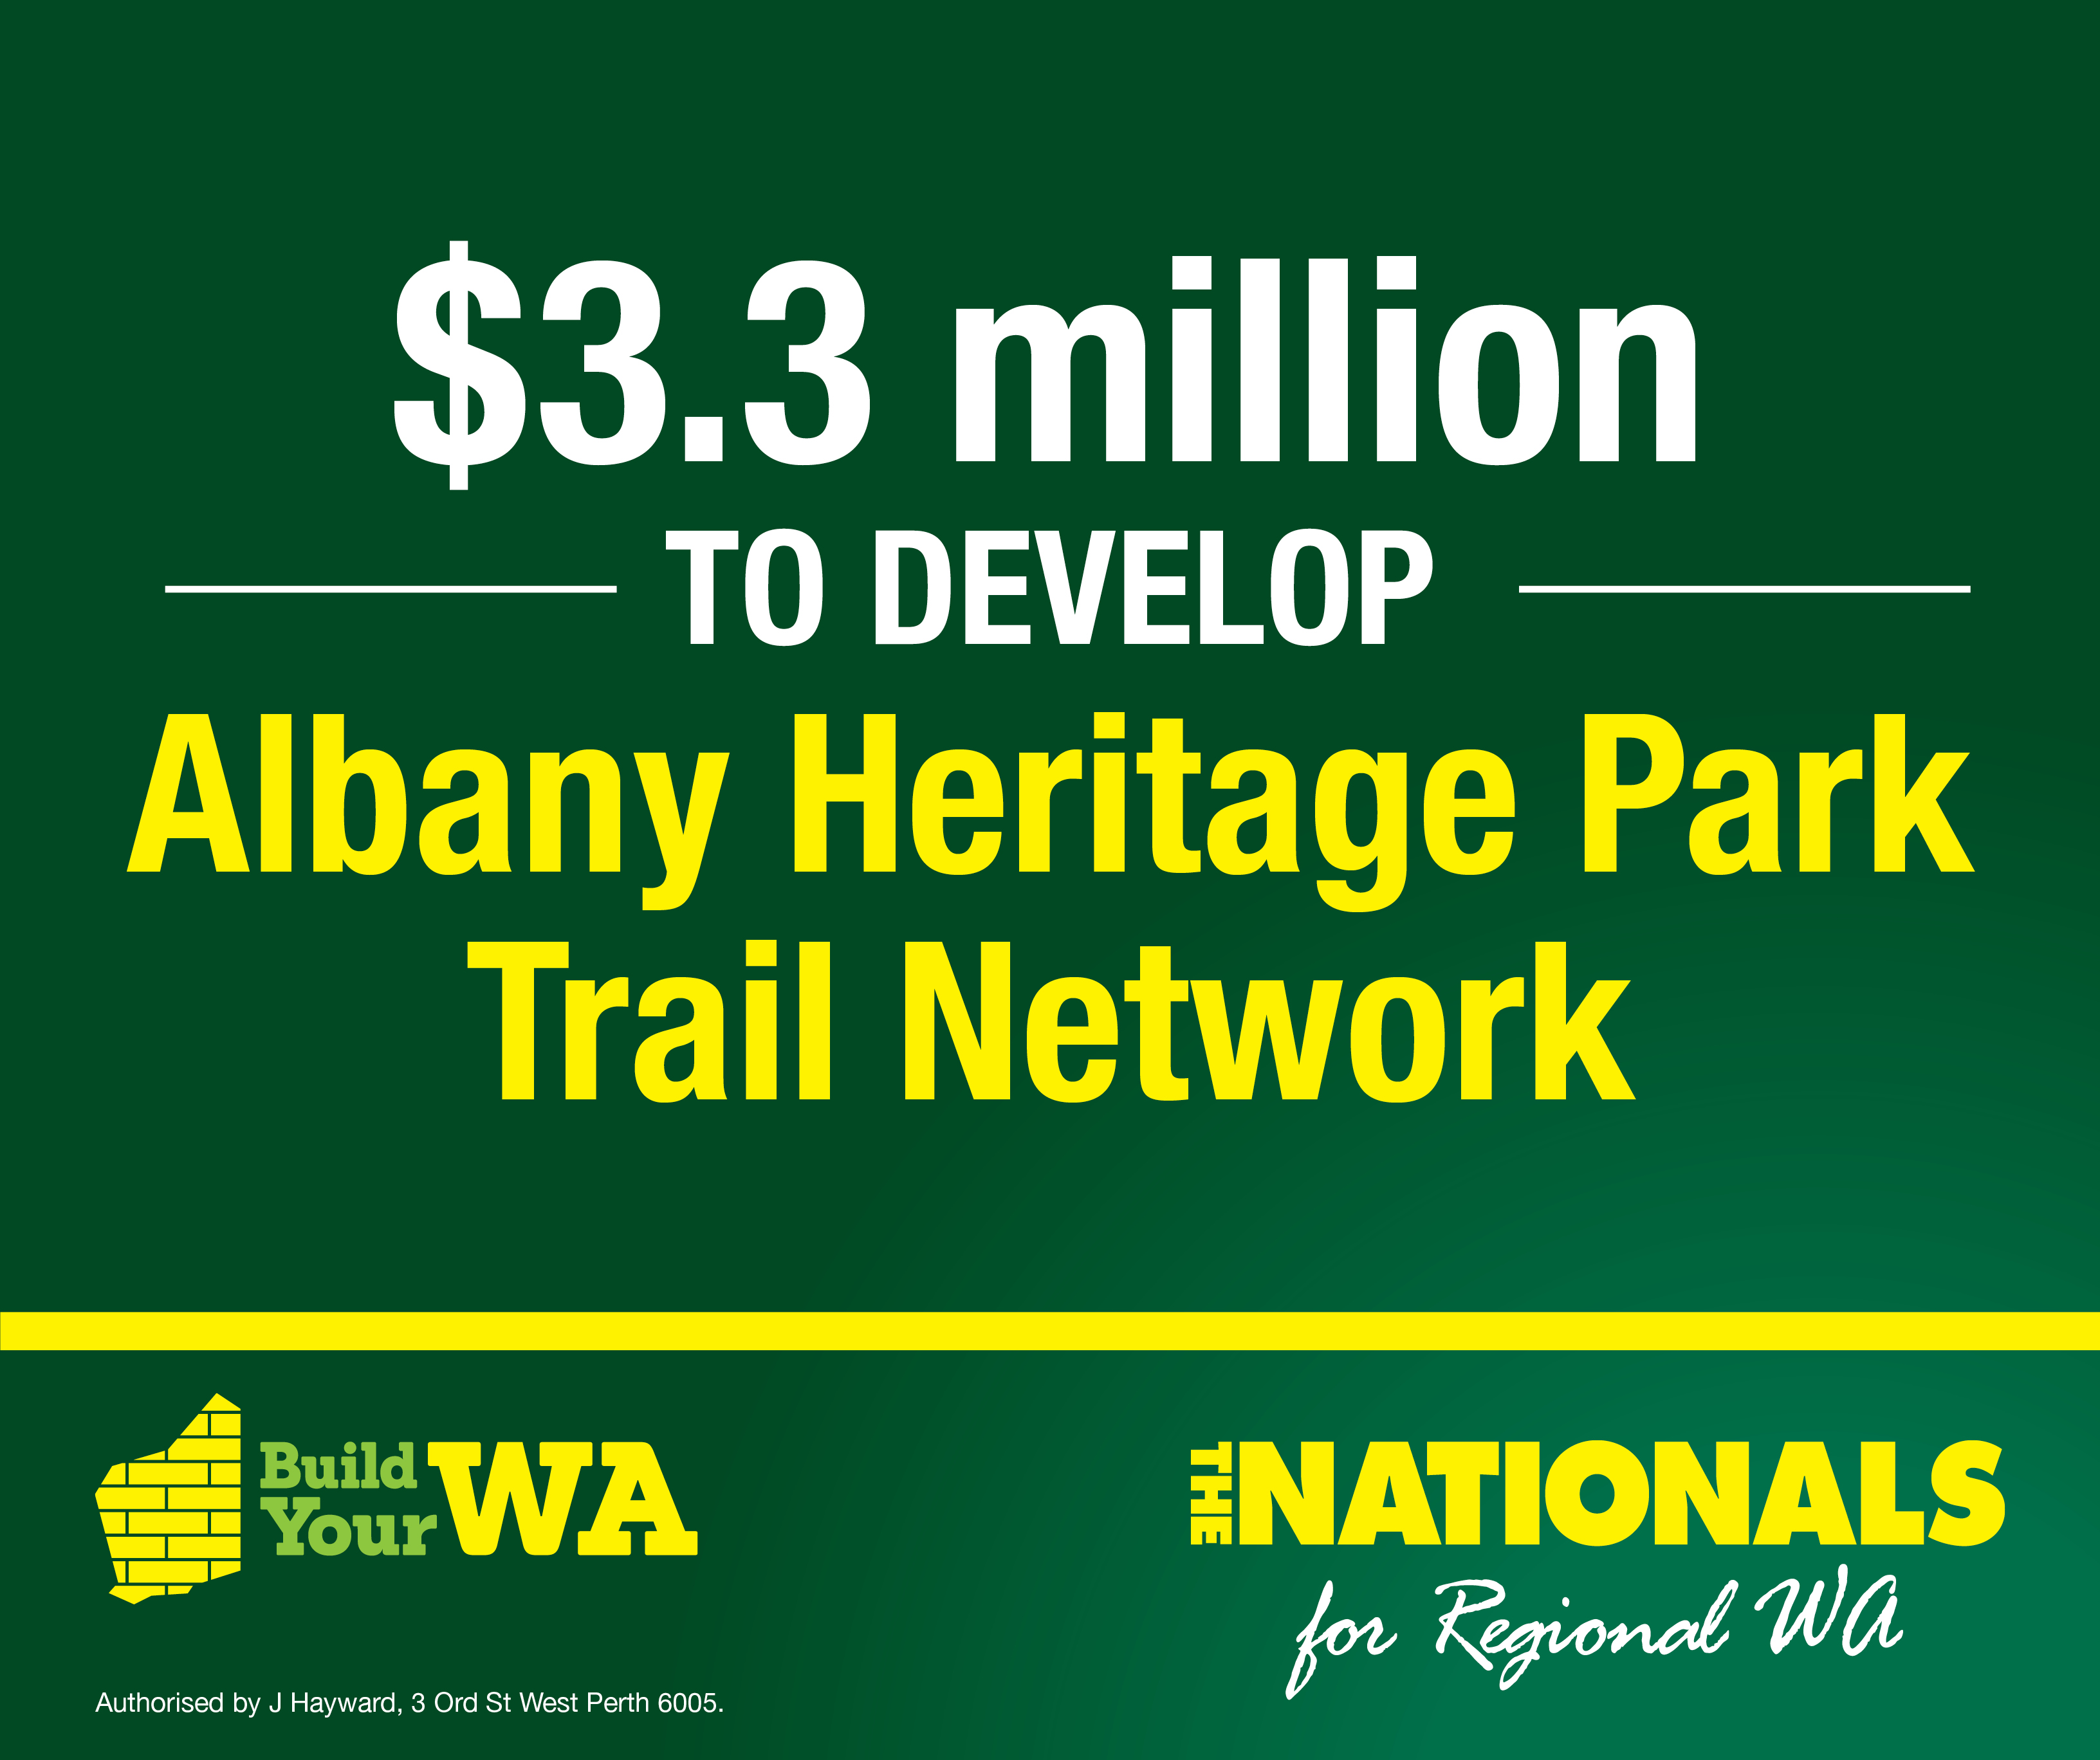 Albany_Heritage_Park_Trail_Network_(1).jpg